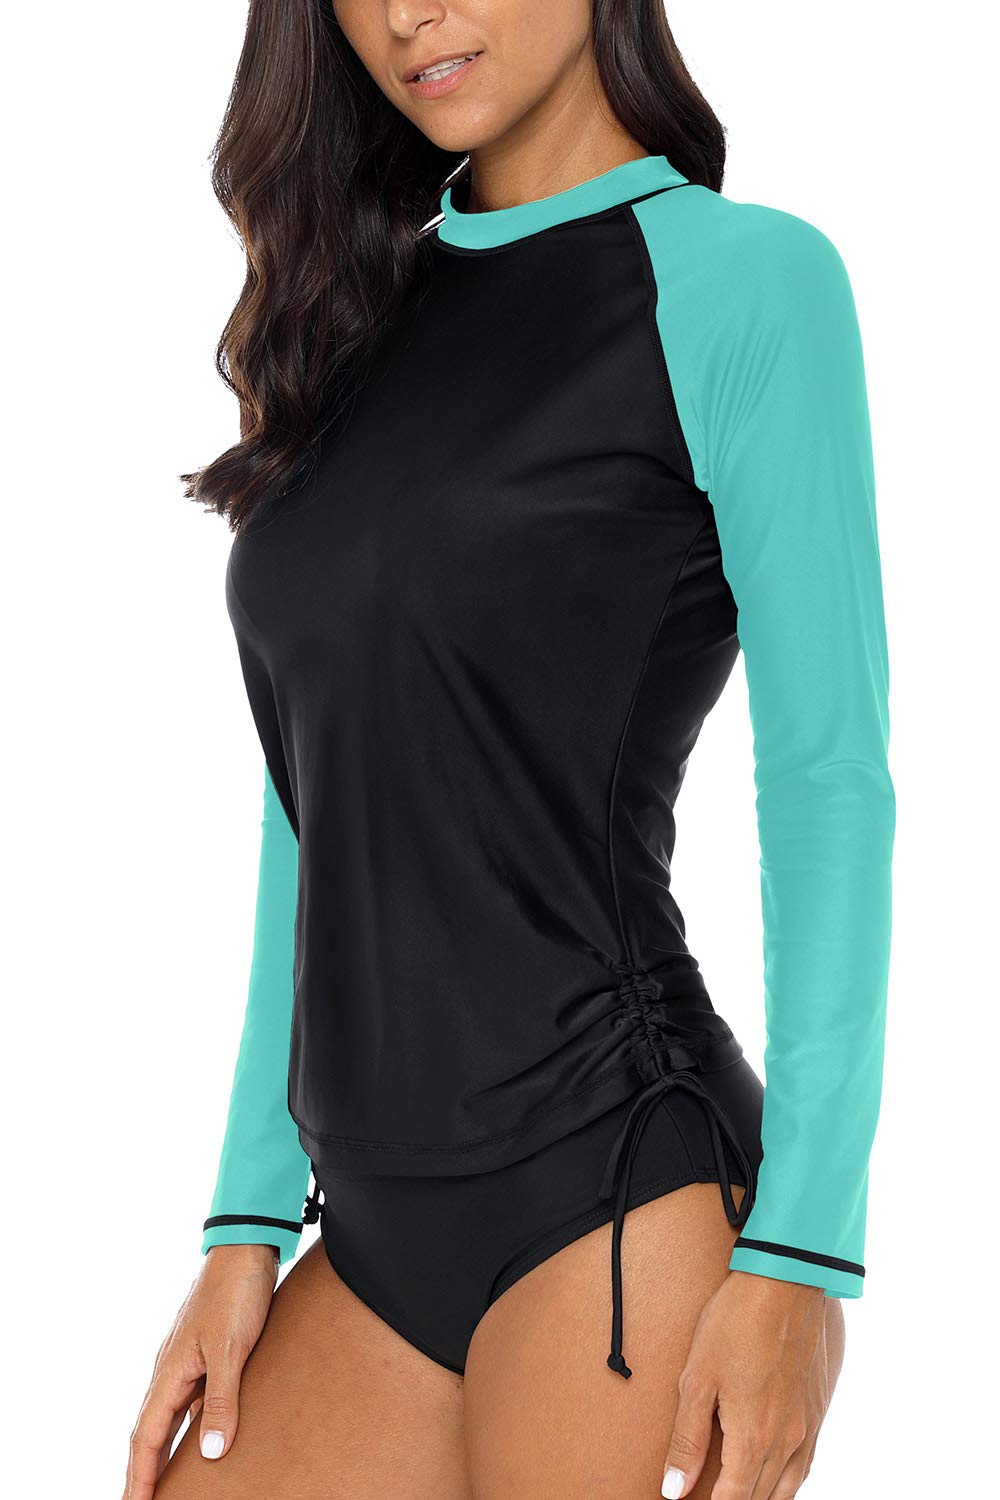 CharmLeaks Long Sleeve Rashguard SPF Shirts for